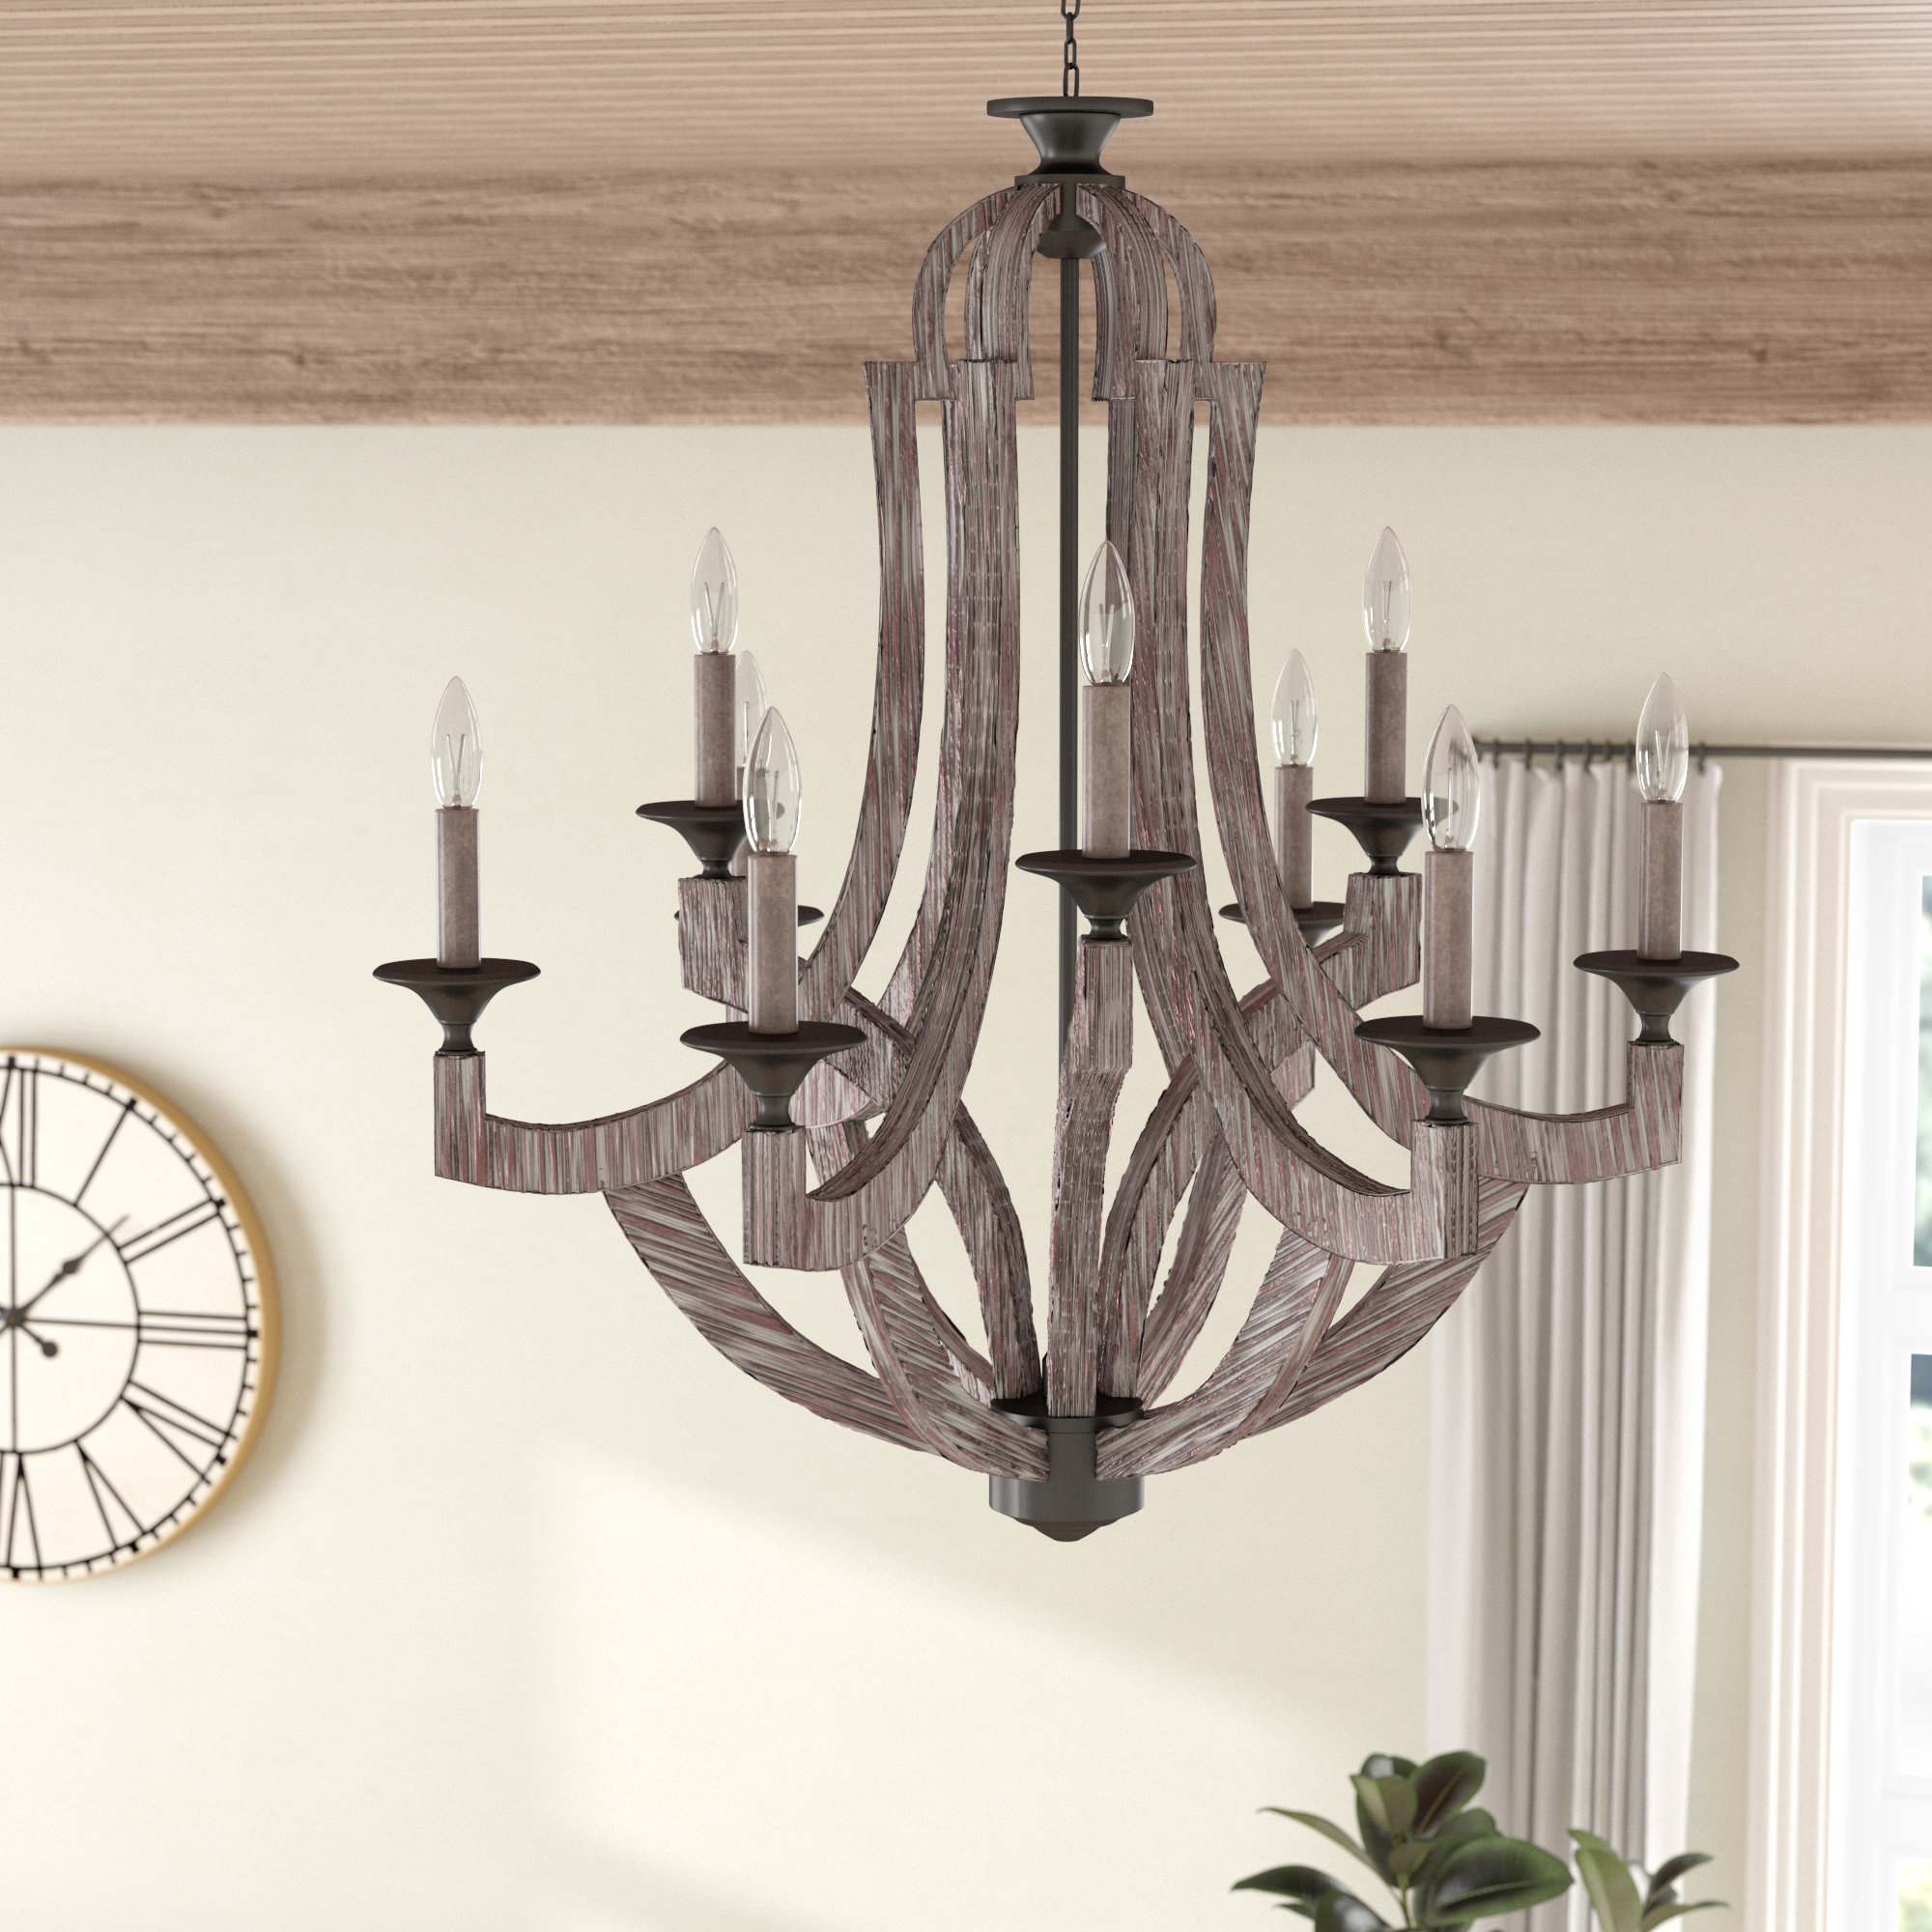 9 Light Candle Chandeliers | Wayfair pertaining to Camilla 9-Light Candle Style Chandeliers (Image 3 of 30)